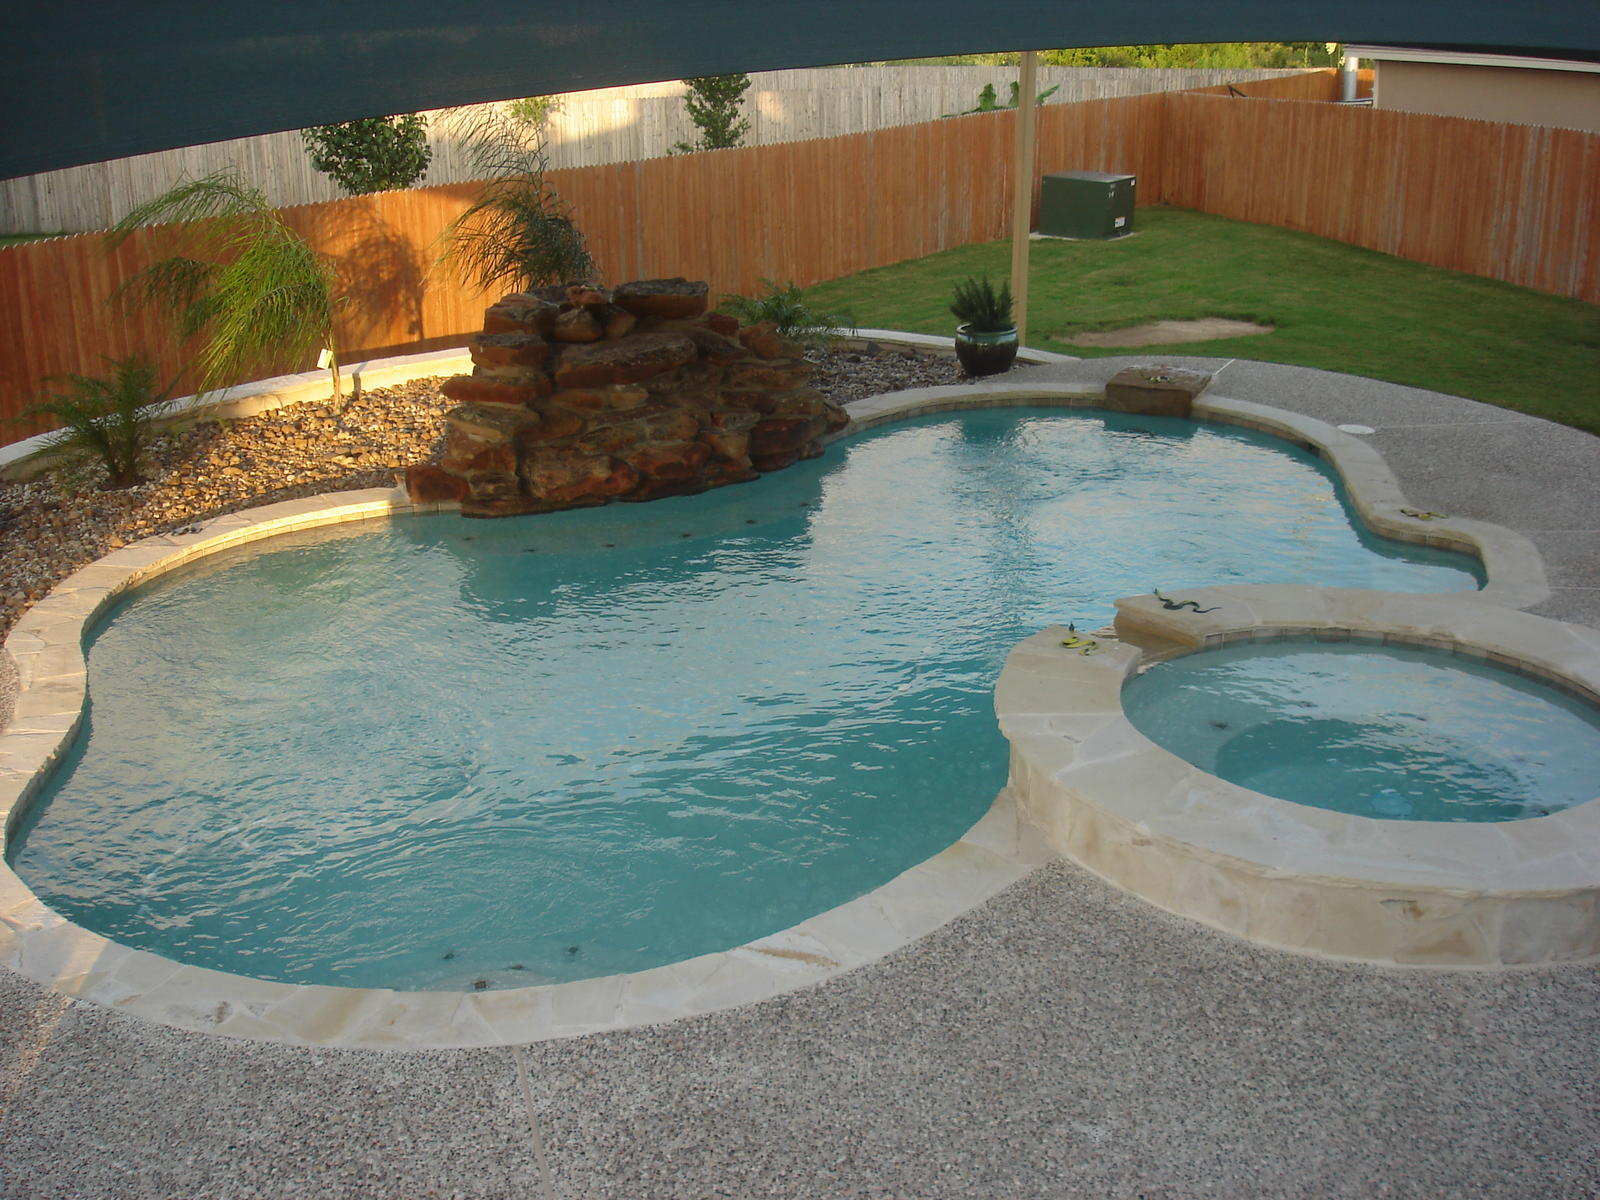 Recommendation on swimming pool companies san antonio for In ground pool companies